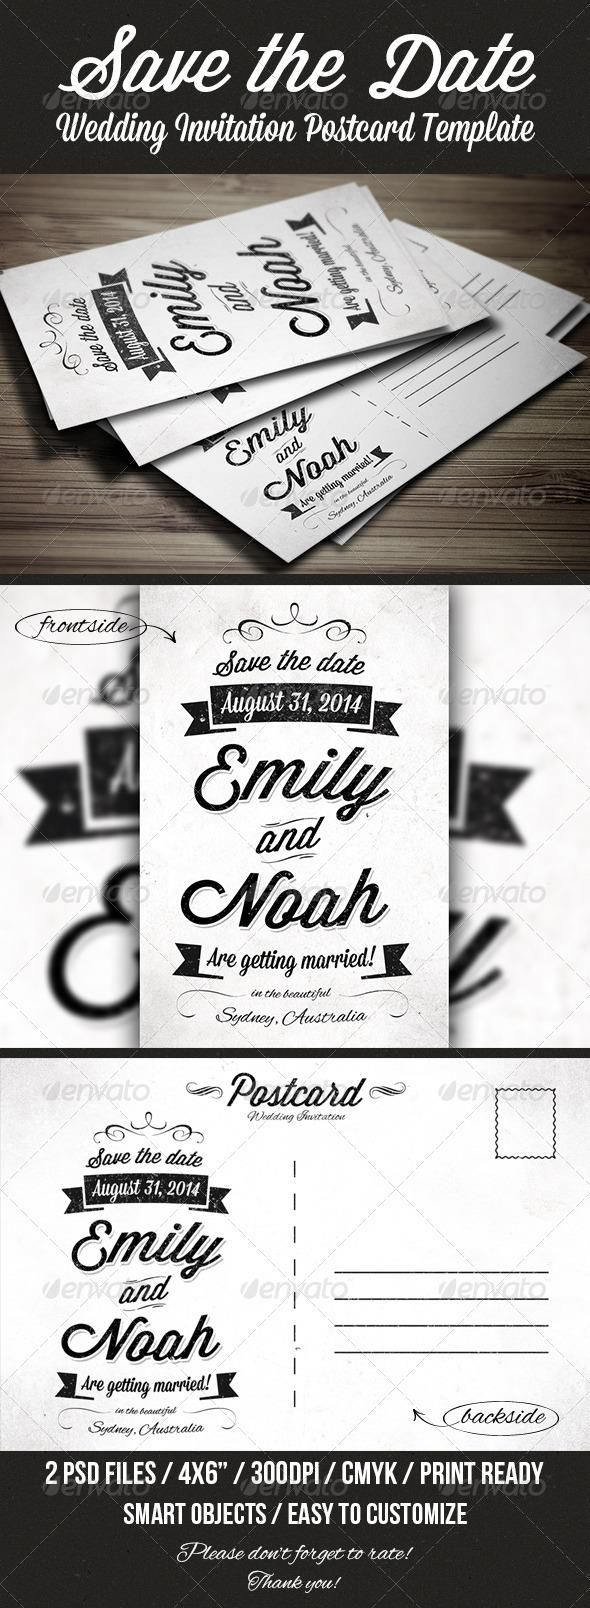 Save The Date Invitation Postcard  Postcard Template Card